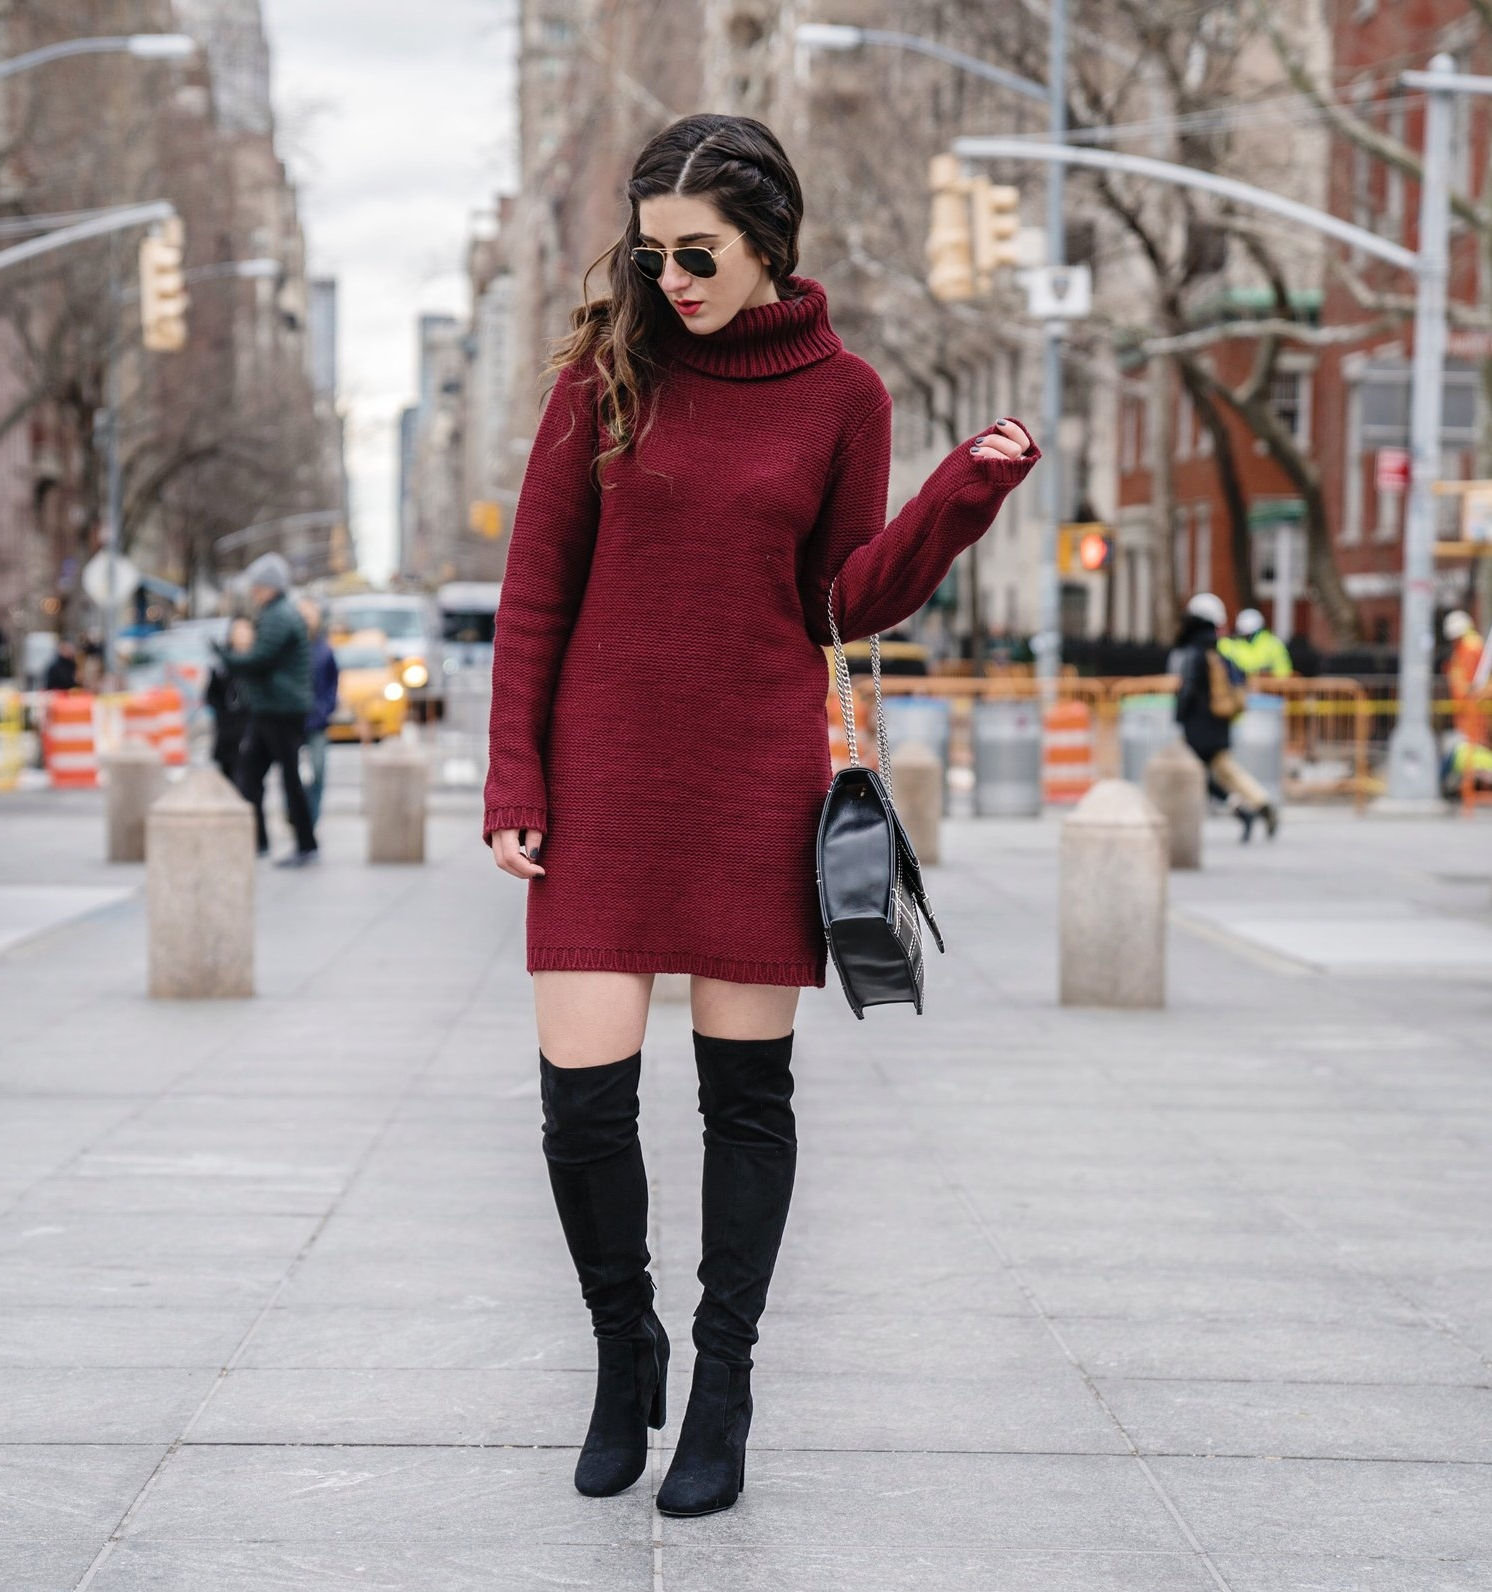 Maroon Sweater Dress OTK Boots My Biggest Blogging Mistake Esther Santer Fashion Blog NYC Street Style Blogger Outfit OOTD Trendy Red Girl Women Sunglasses RayBan Aviators Wearing Shopping Zara Casual Inspo Photoshoot New York City Bag Grid Purse Hair.JPG